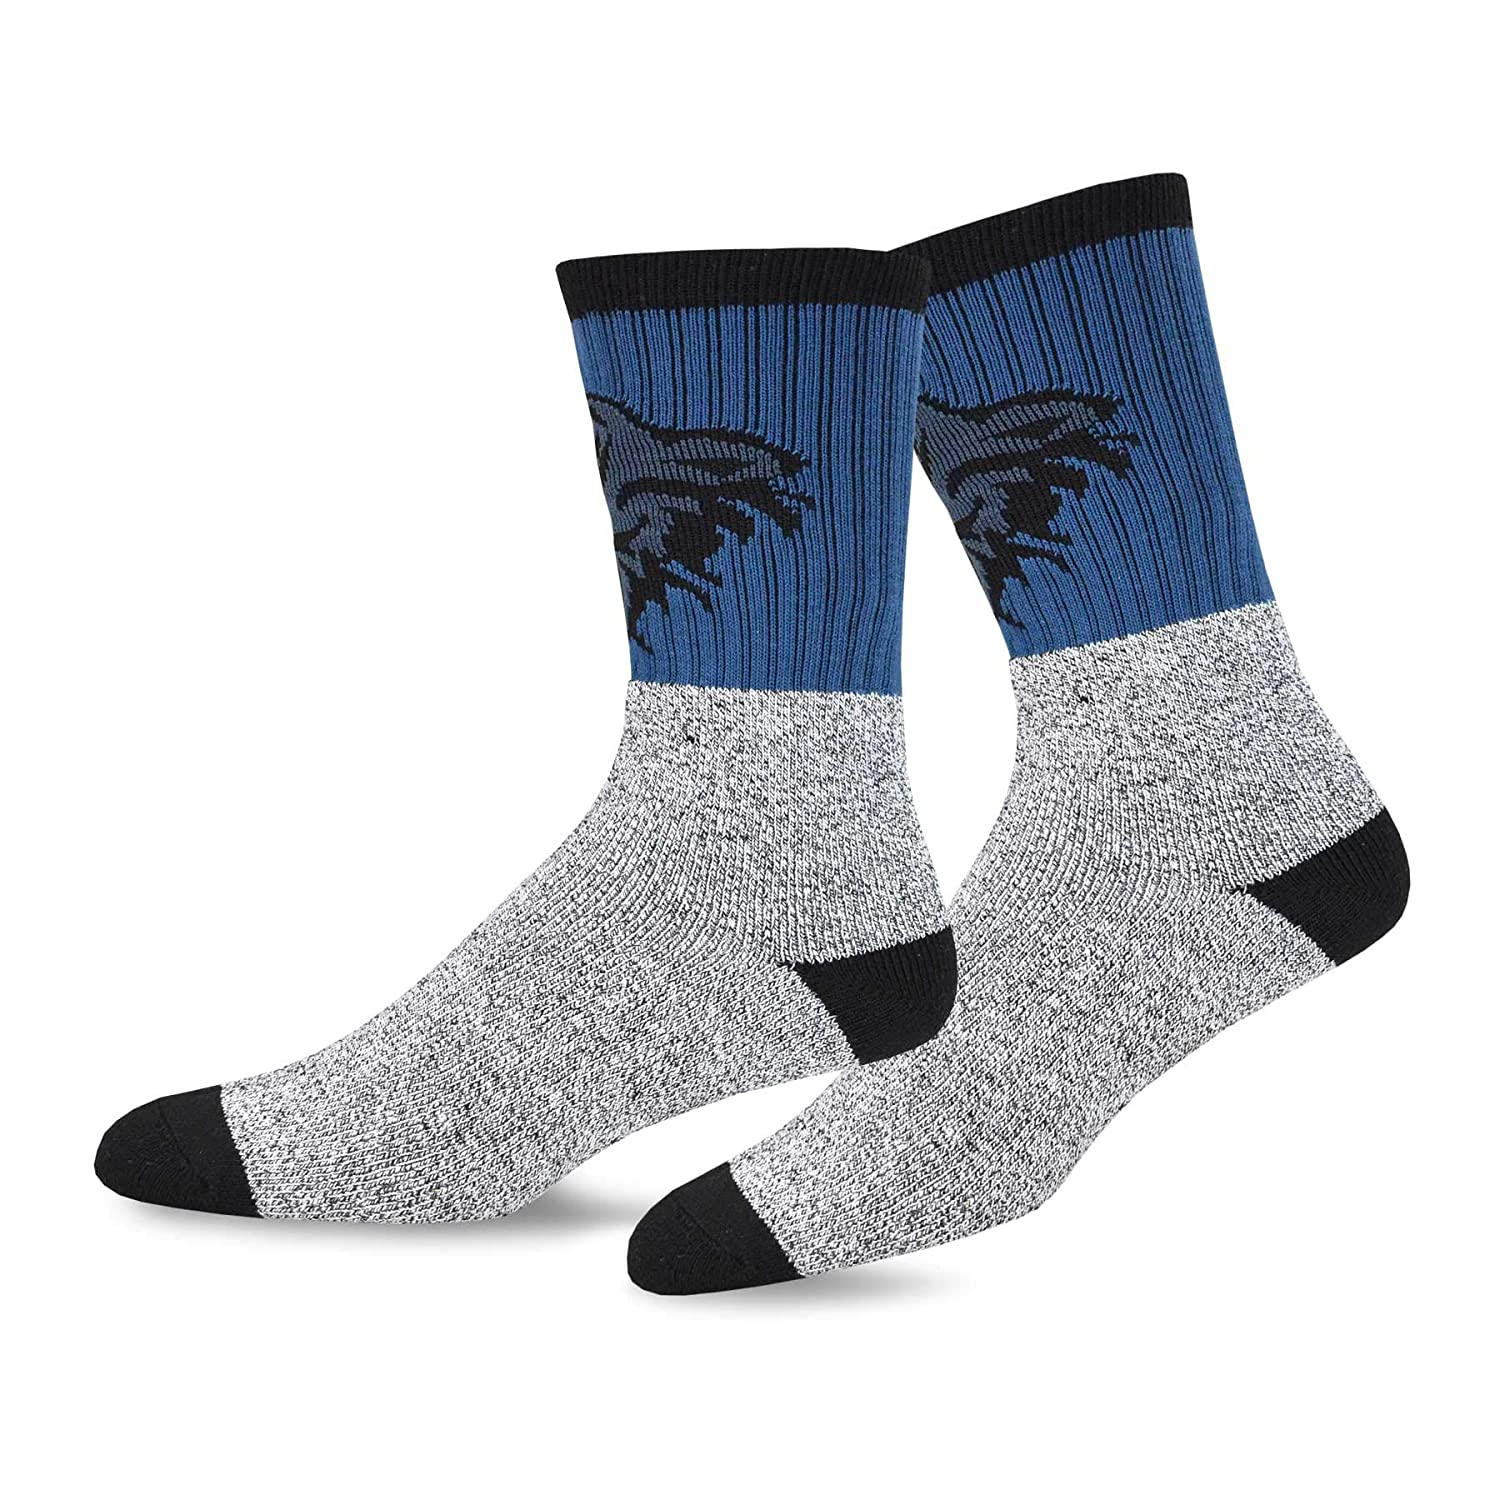 b95587b3998 Soxnet Eco Friendly Heavy Weight Recyled Cotton Thermals Boot Socks 4 Pairs  at Amazon Men s Clothing store